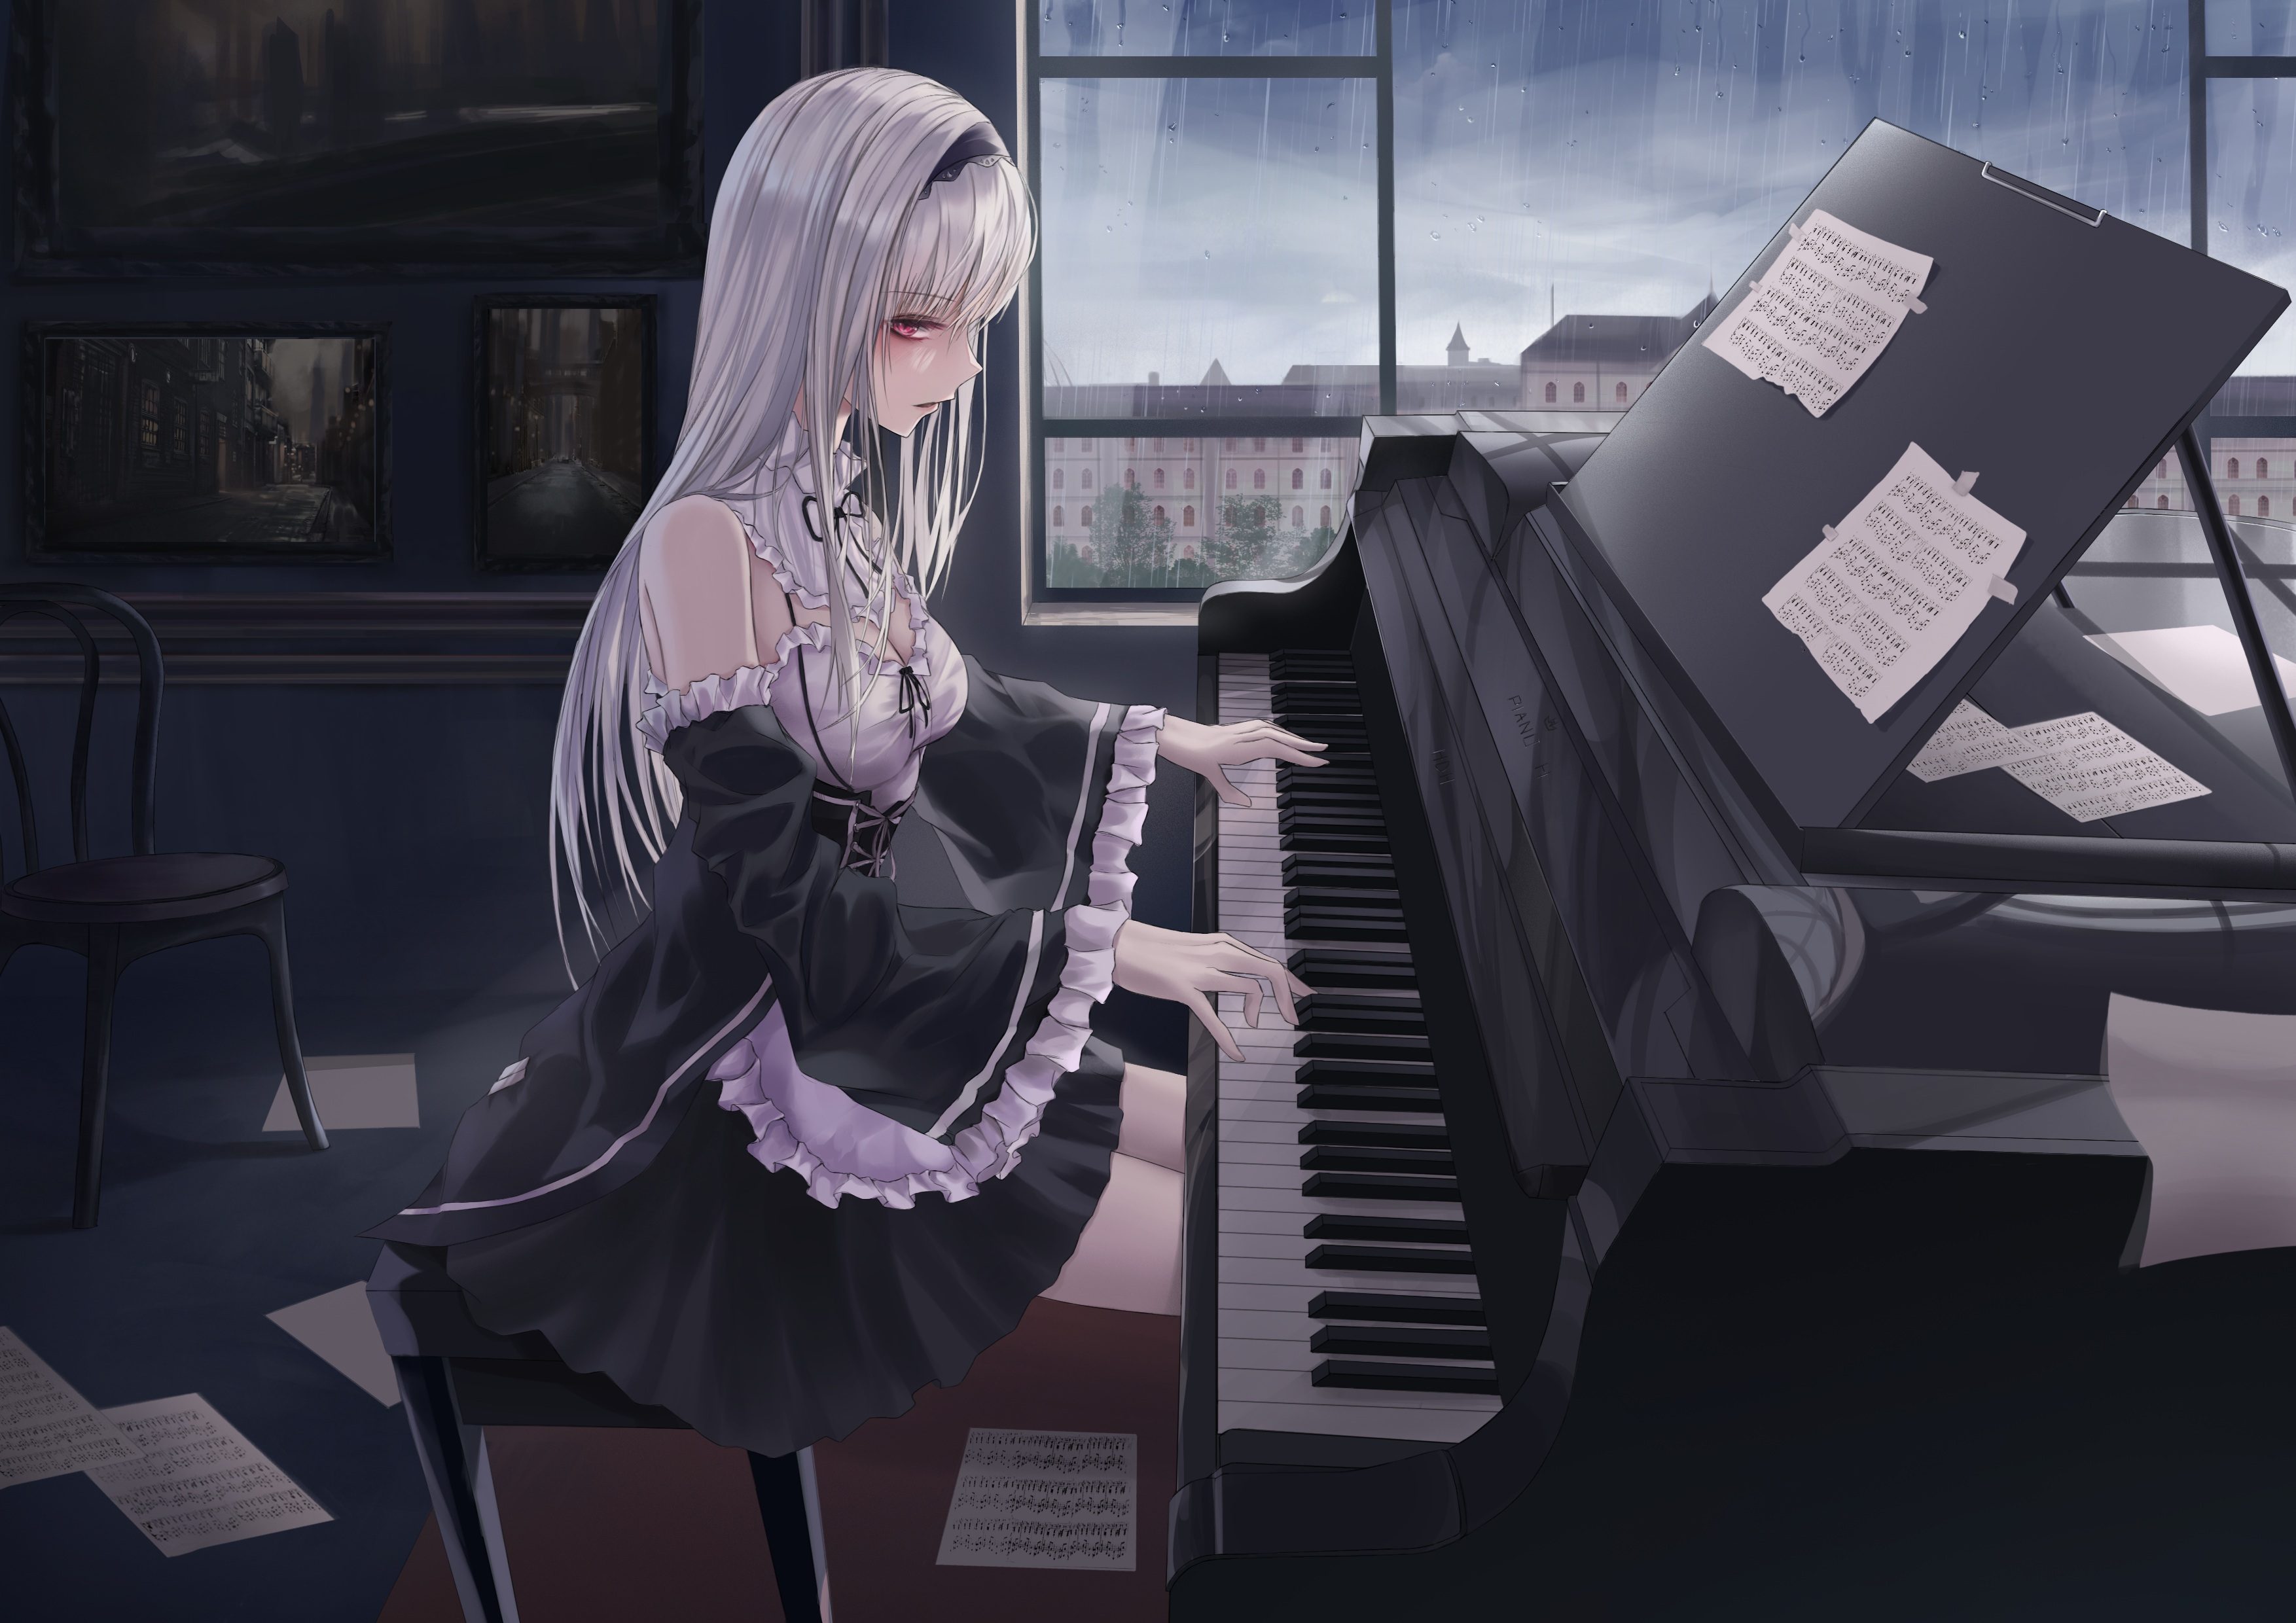 Anime Anime Girls Piano Maid Outfit Silver Hair Red Eyes 3508x2480